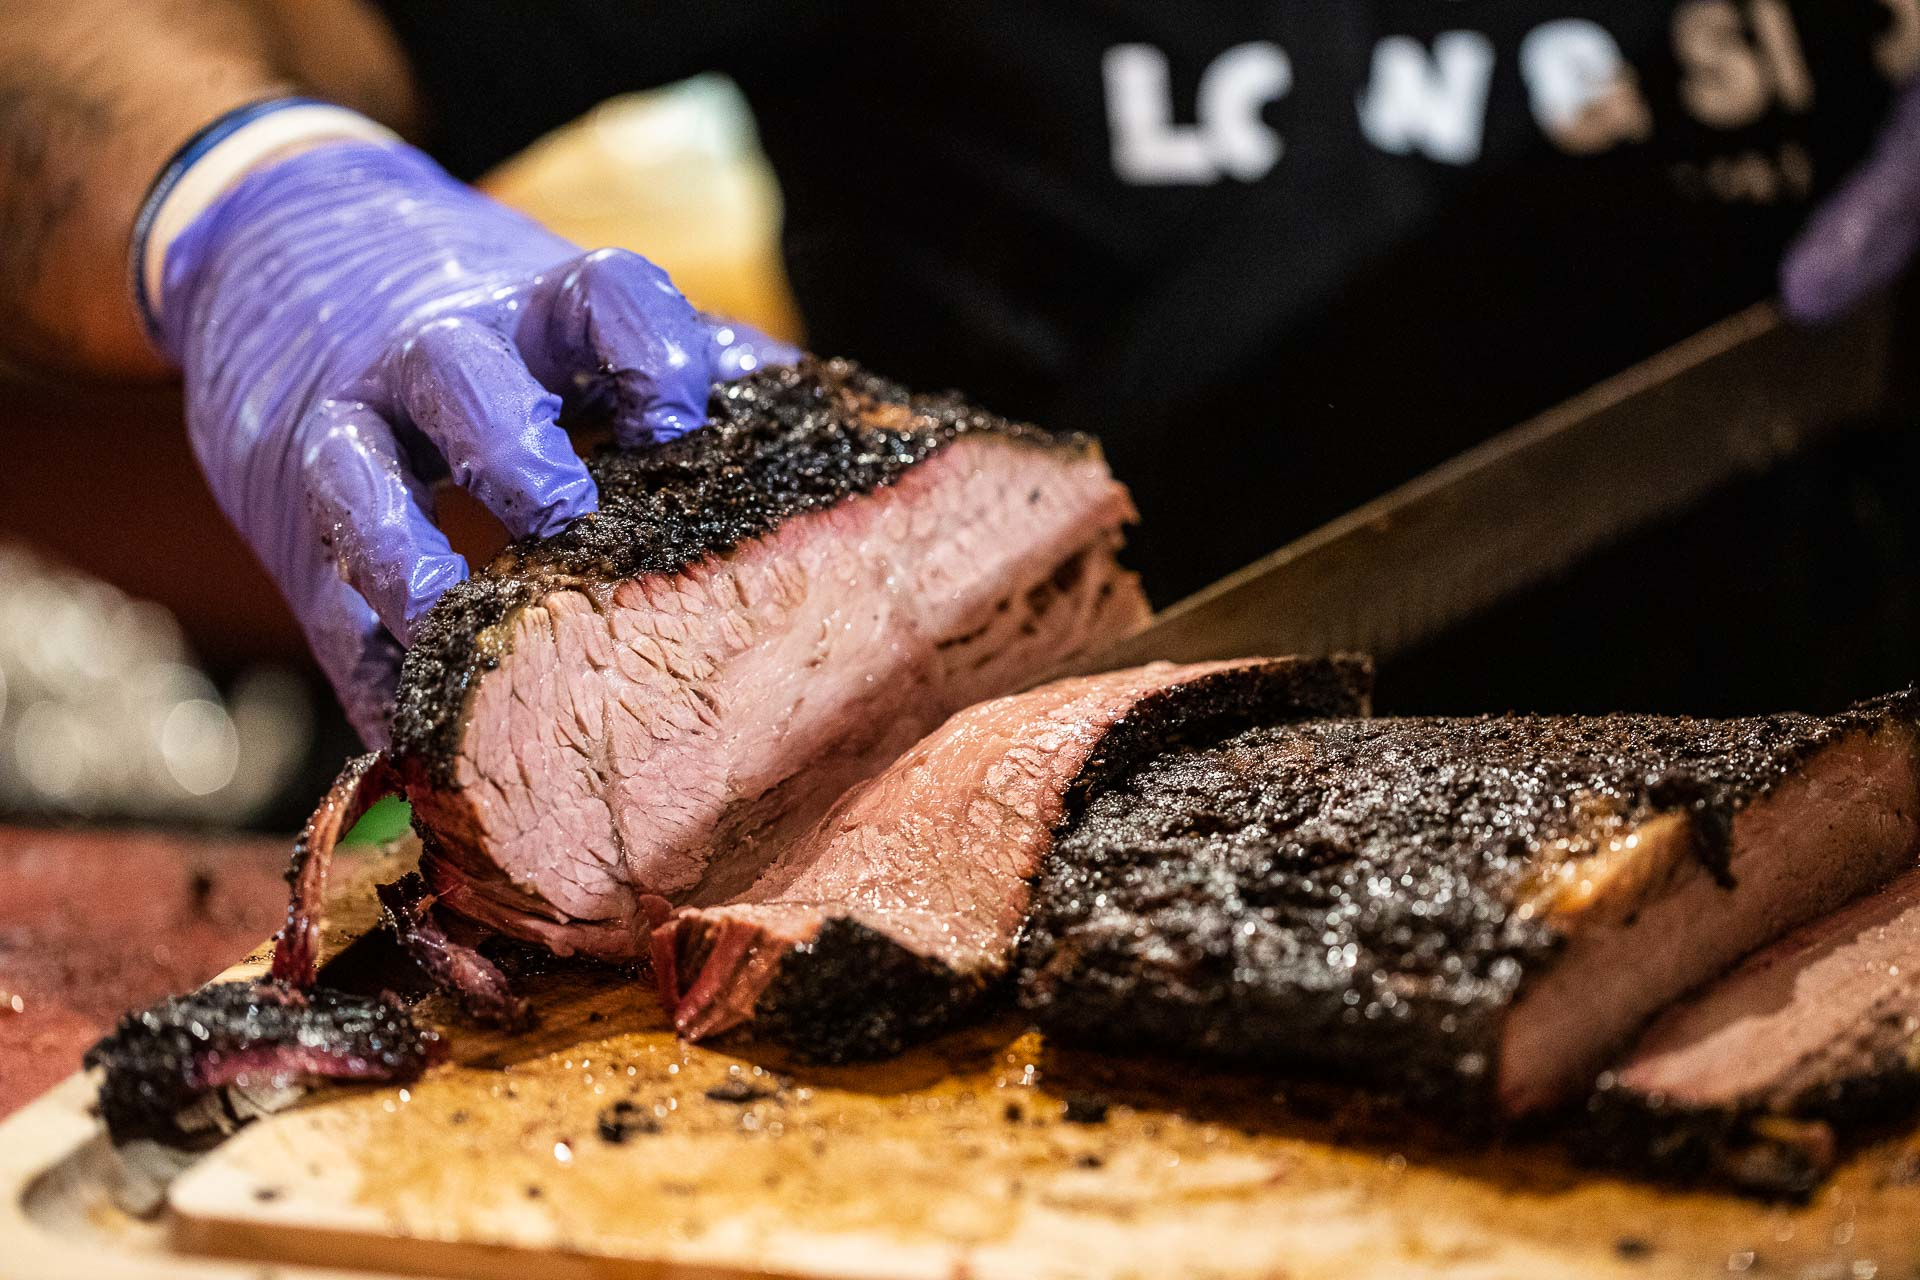 A gloved worker cuts slices of brisket on a wooden counter at Jack's BBQ